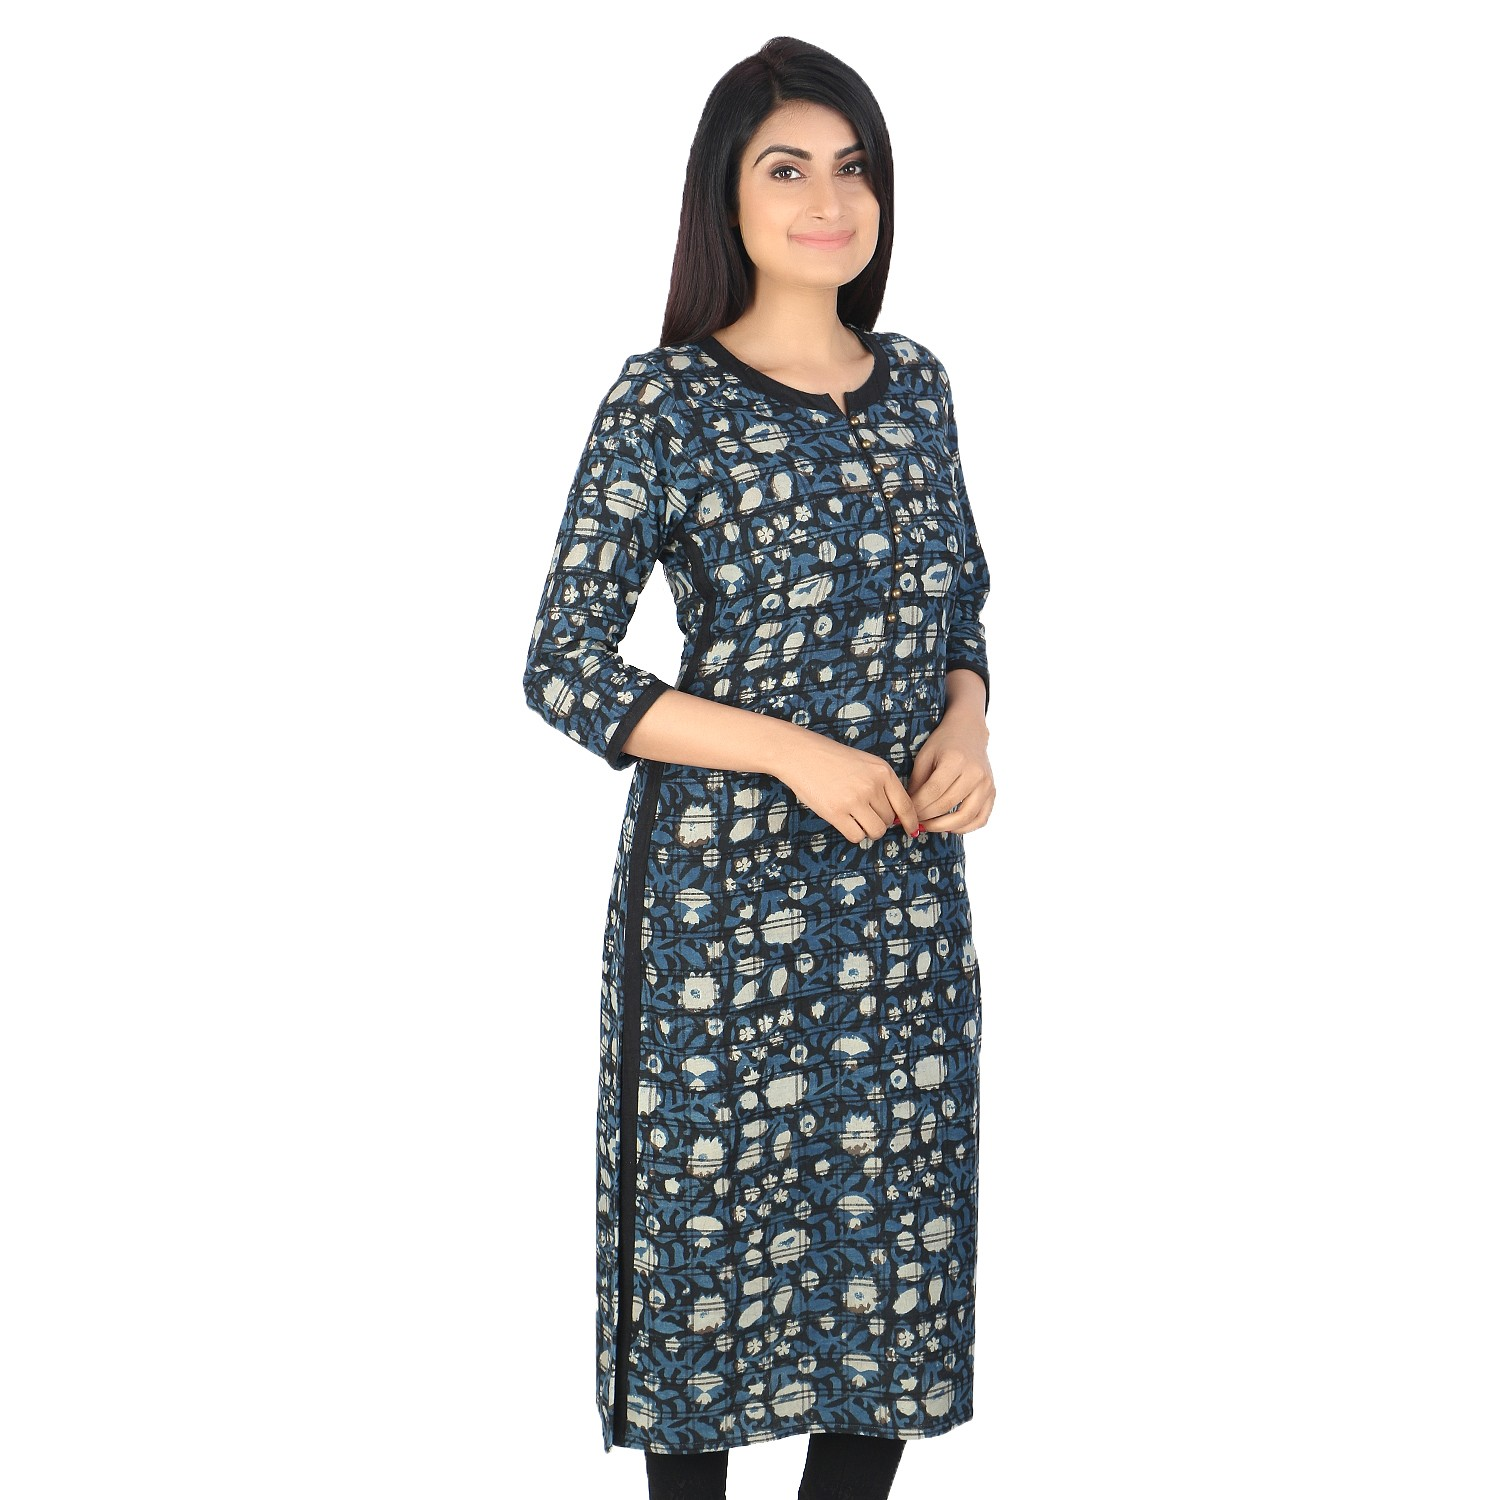 Indigo Black block printed khadi cotton long kurti by weavers of Bihar